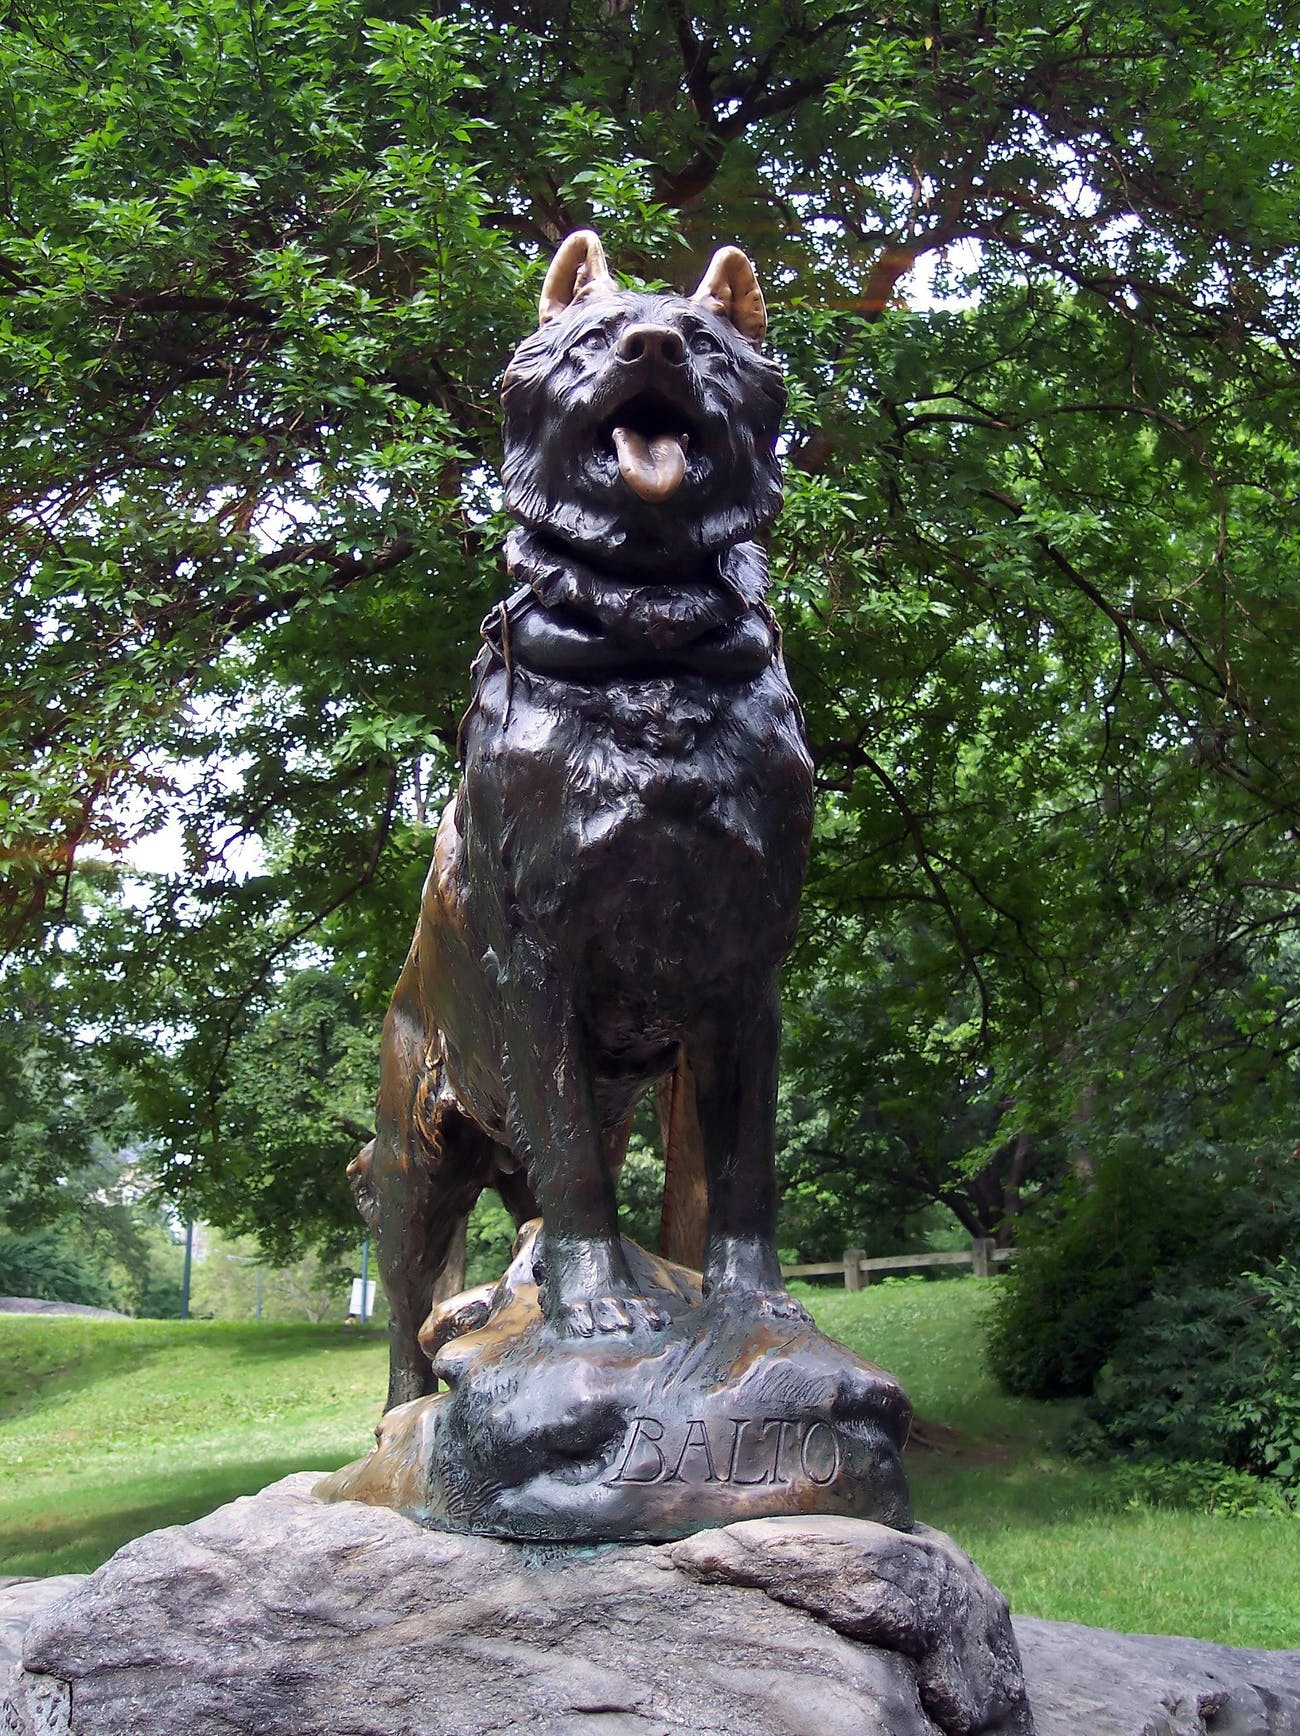 The Balto statue in Central Park in New York City.